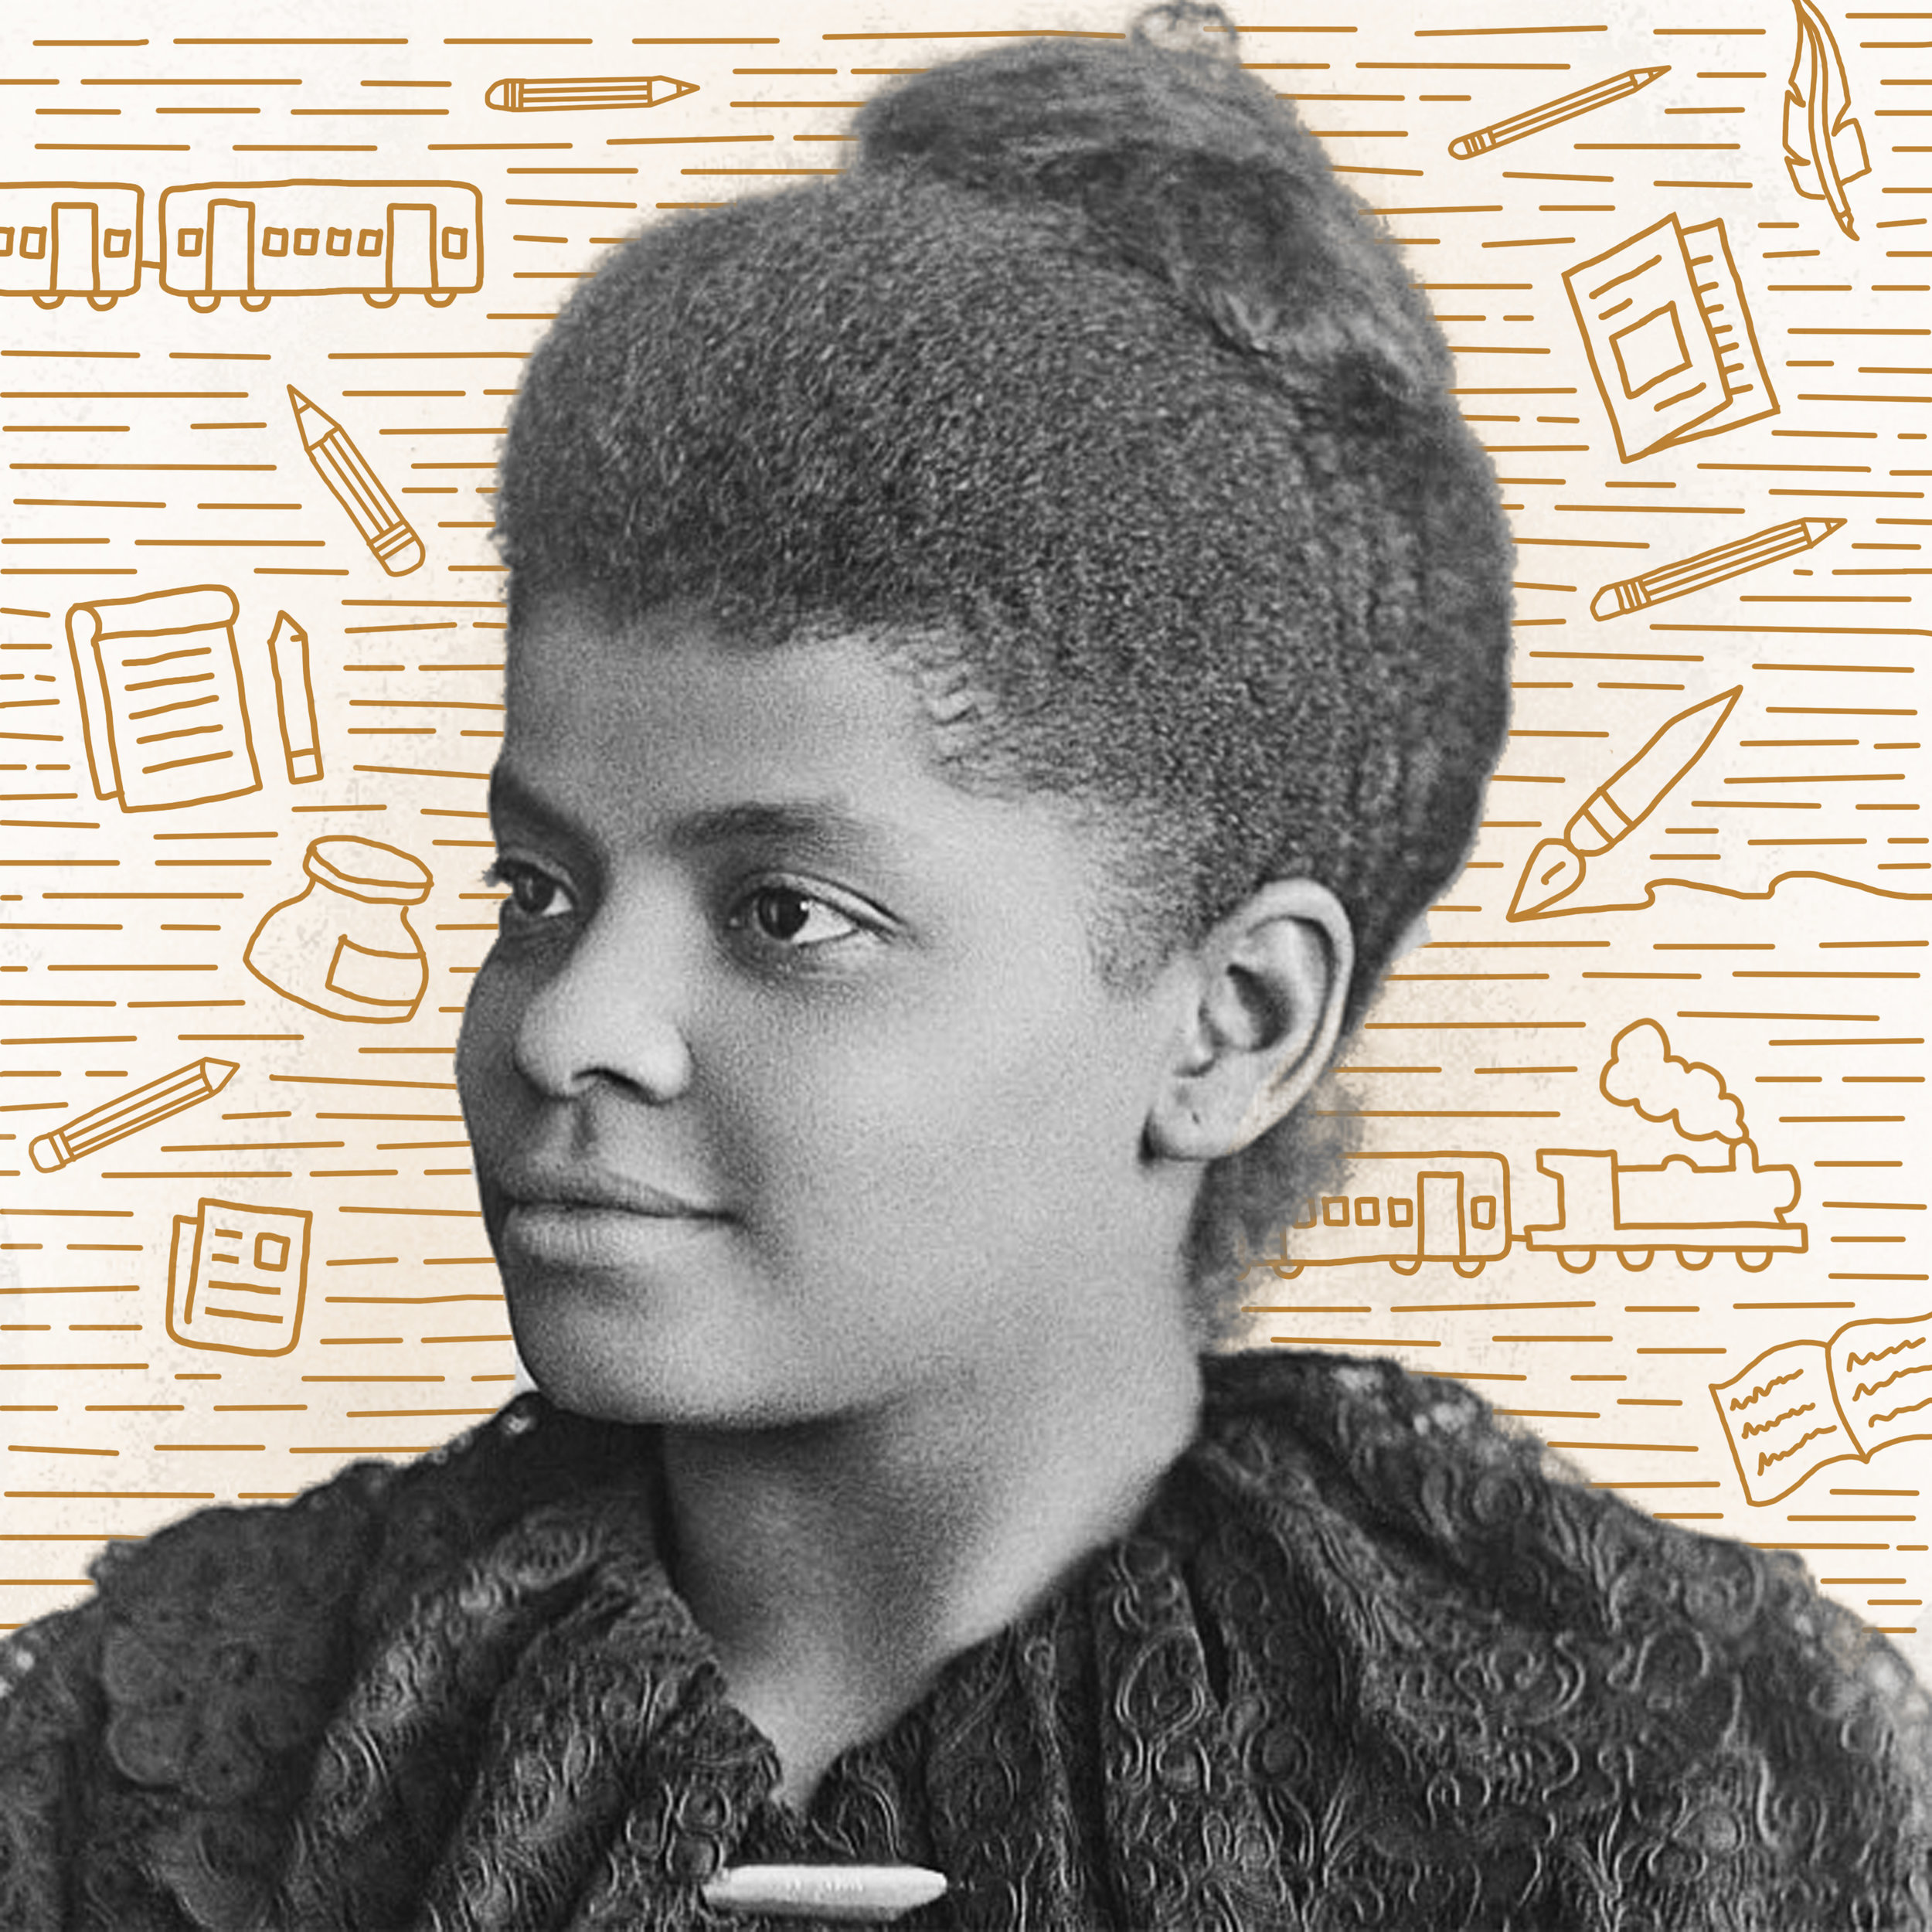 Ida B. Wells   Born a slave in Mississippi in 1862, she became basically everything: a civil rights reformer, fearless investigative journalist, and serious badass who took on race hatred head-on by writing openly about America's lynching as a way to control African American people. She even refused to give up a spot on a white woman's train car, 71 years before Rosa Parks.